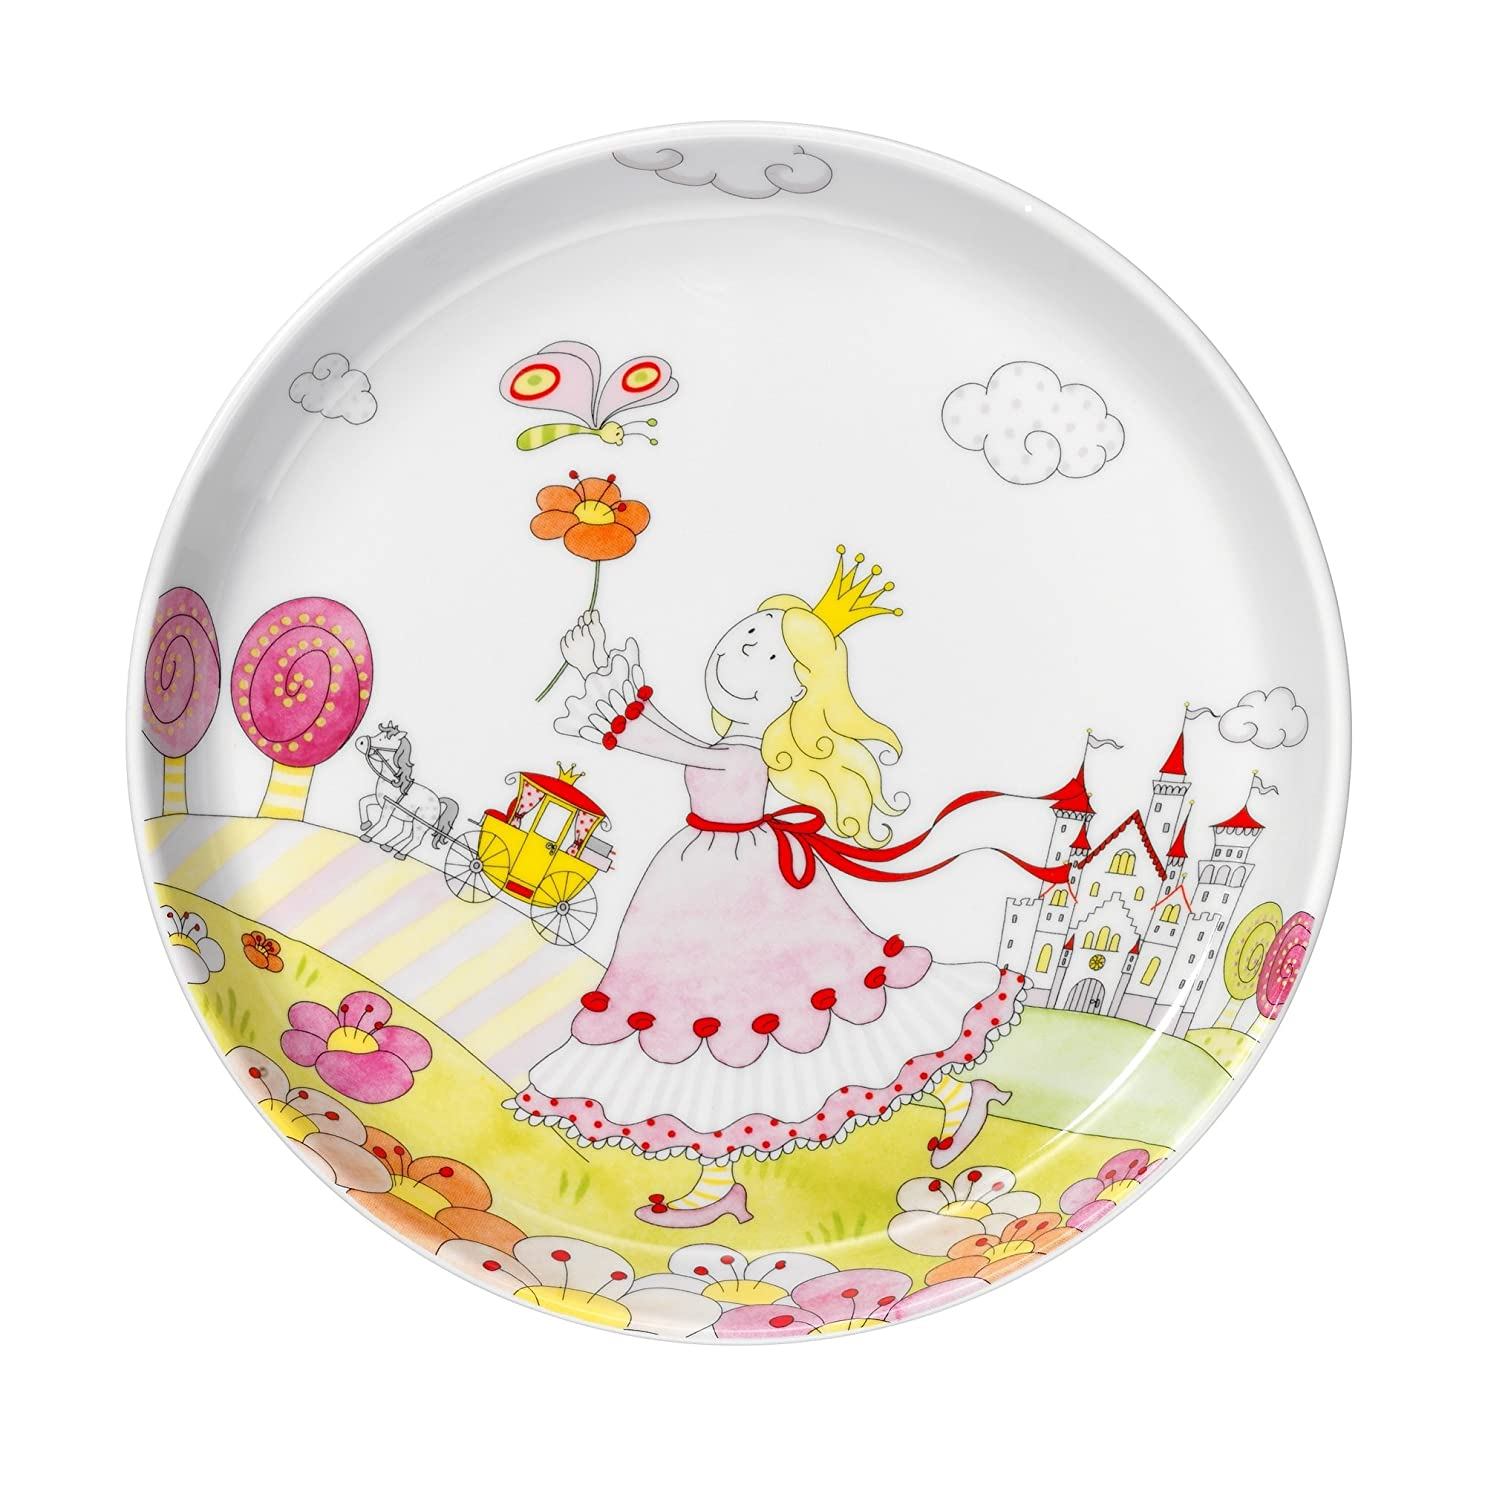 Amazon.com: WMF Childrens Crockery Set of 6 Princess Anneli Polished 18/10 Stainless Steel Age 3 Years and Over.: Kitchen & Dining